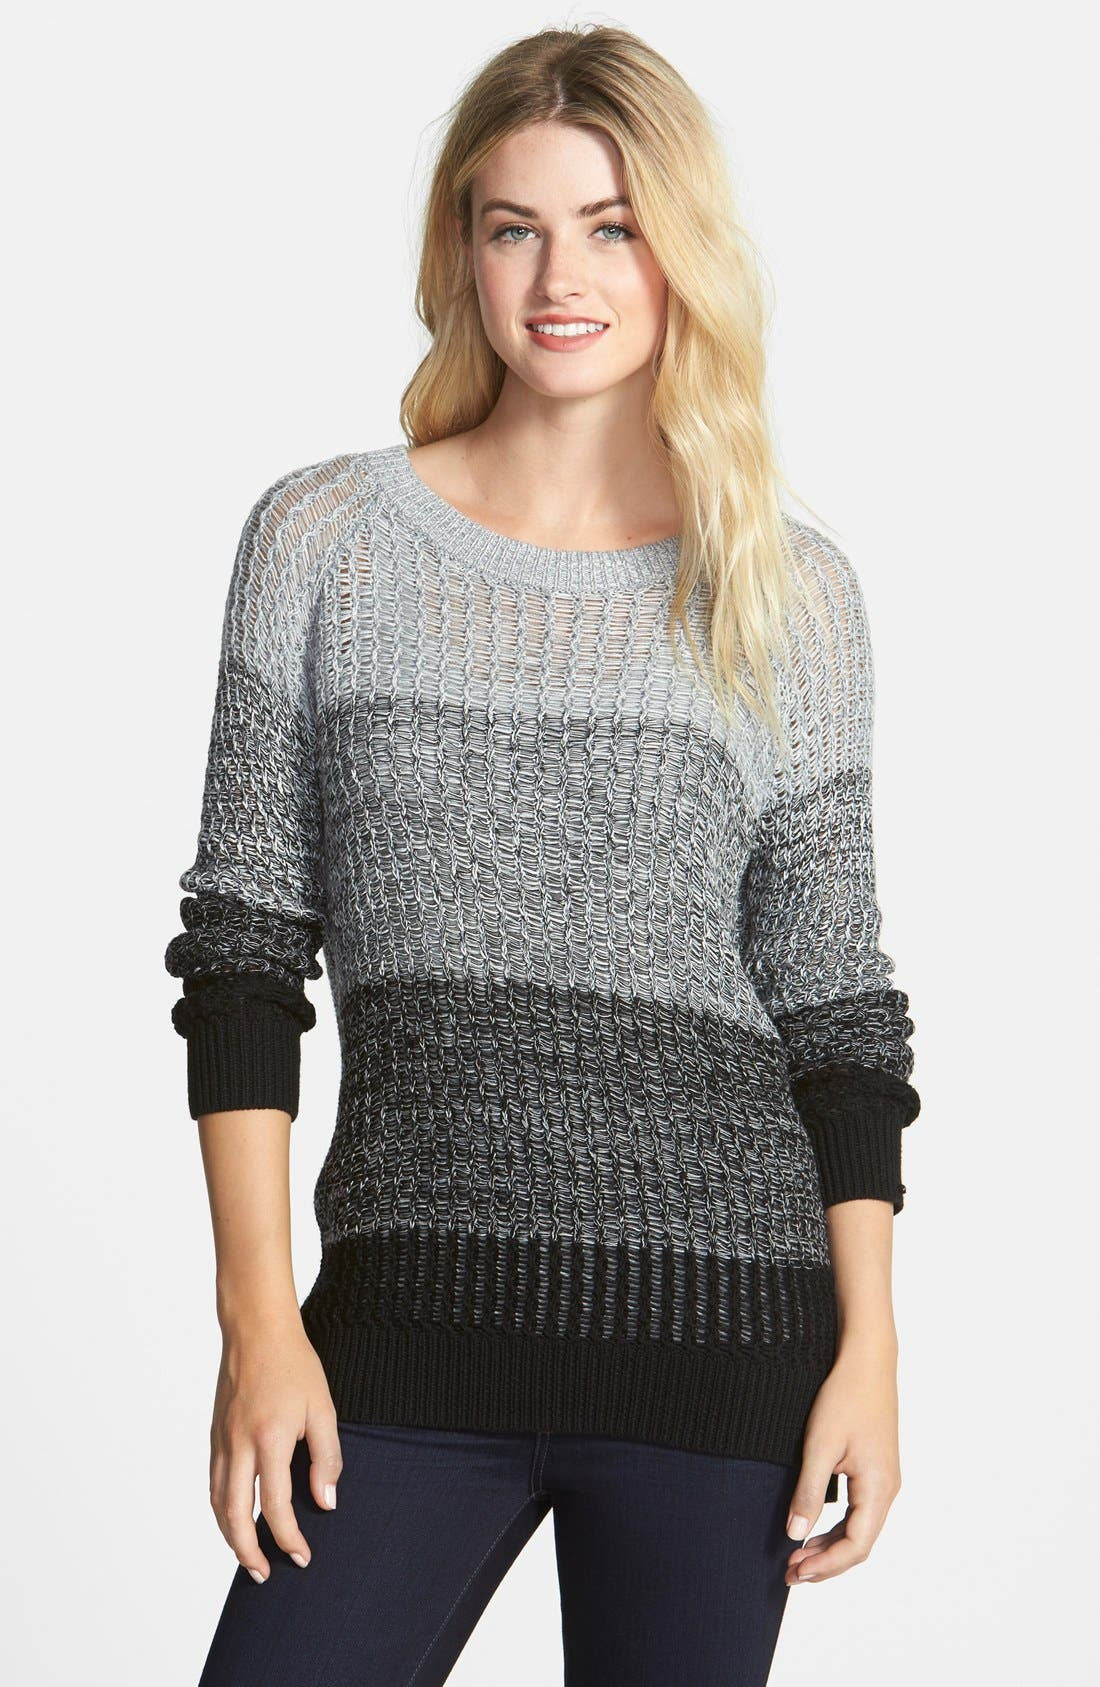 Main Image - Two by Vince Camuto Ombré Stripe Shaker Sweater